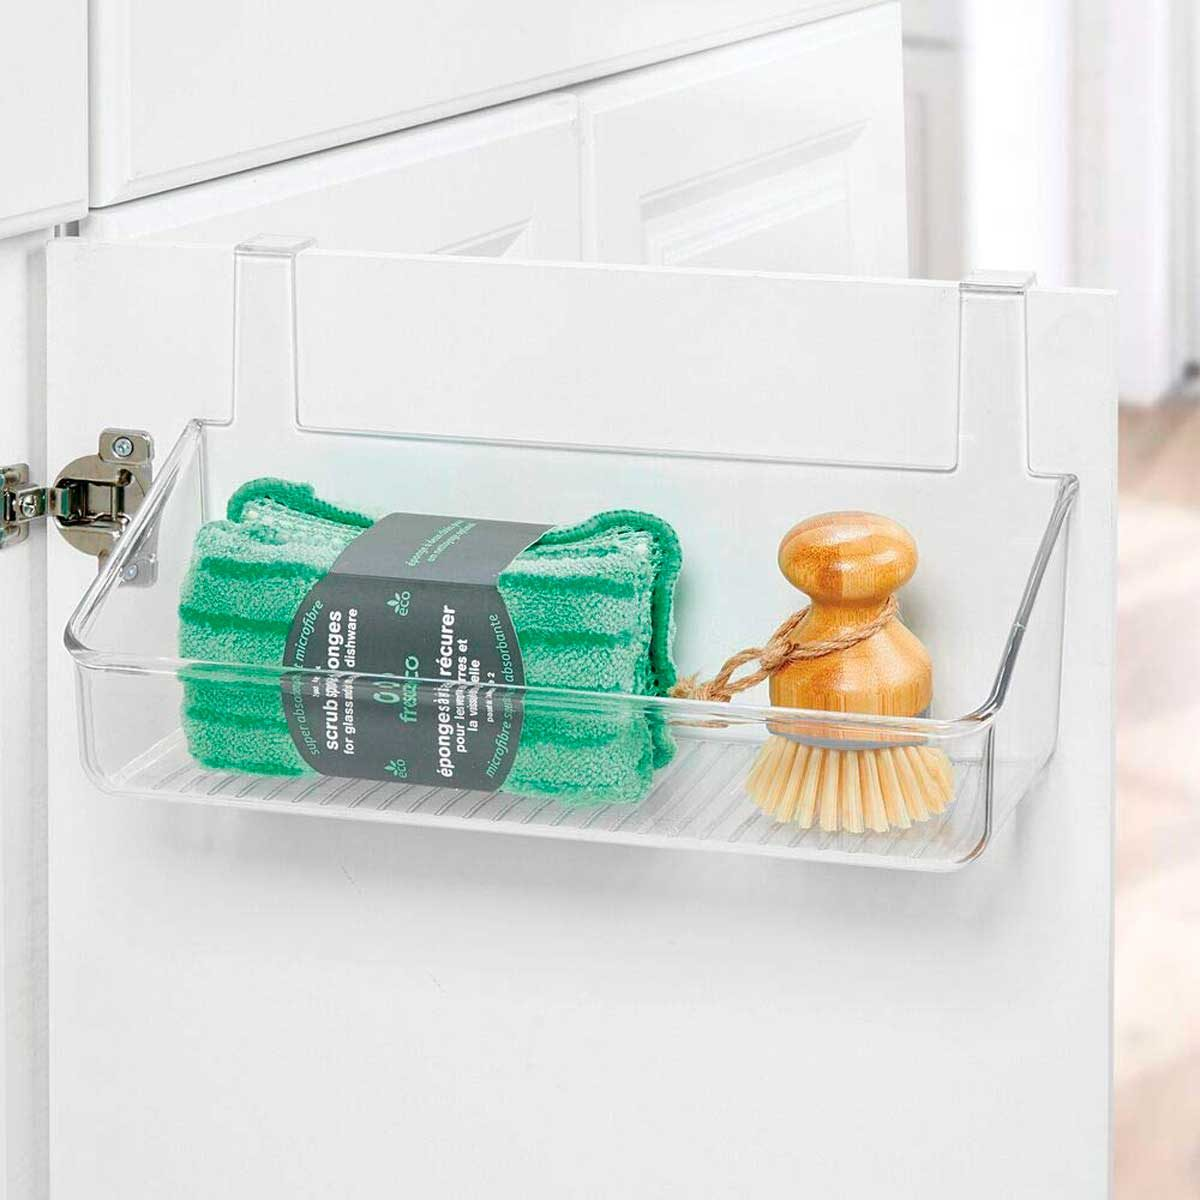 over-door organizer